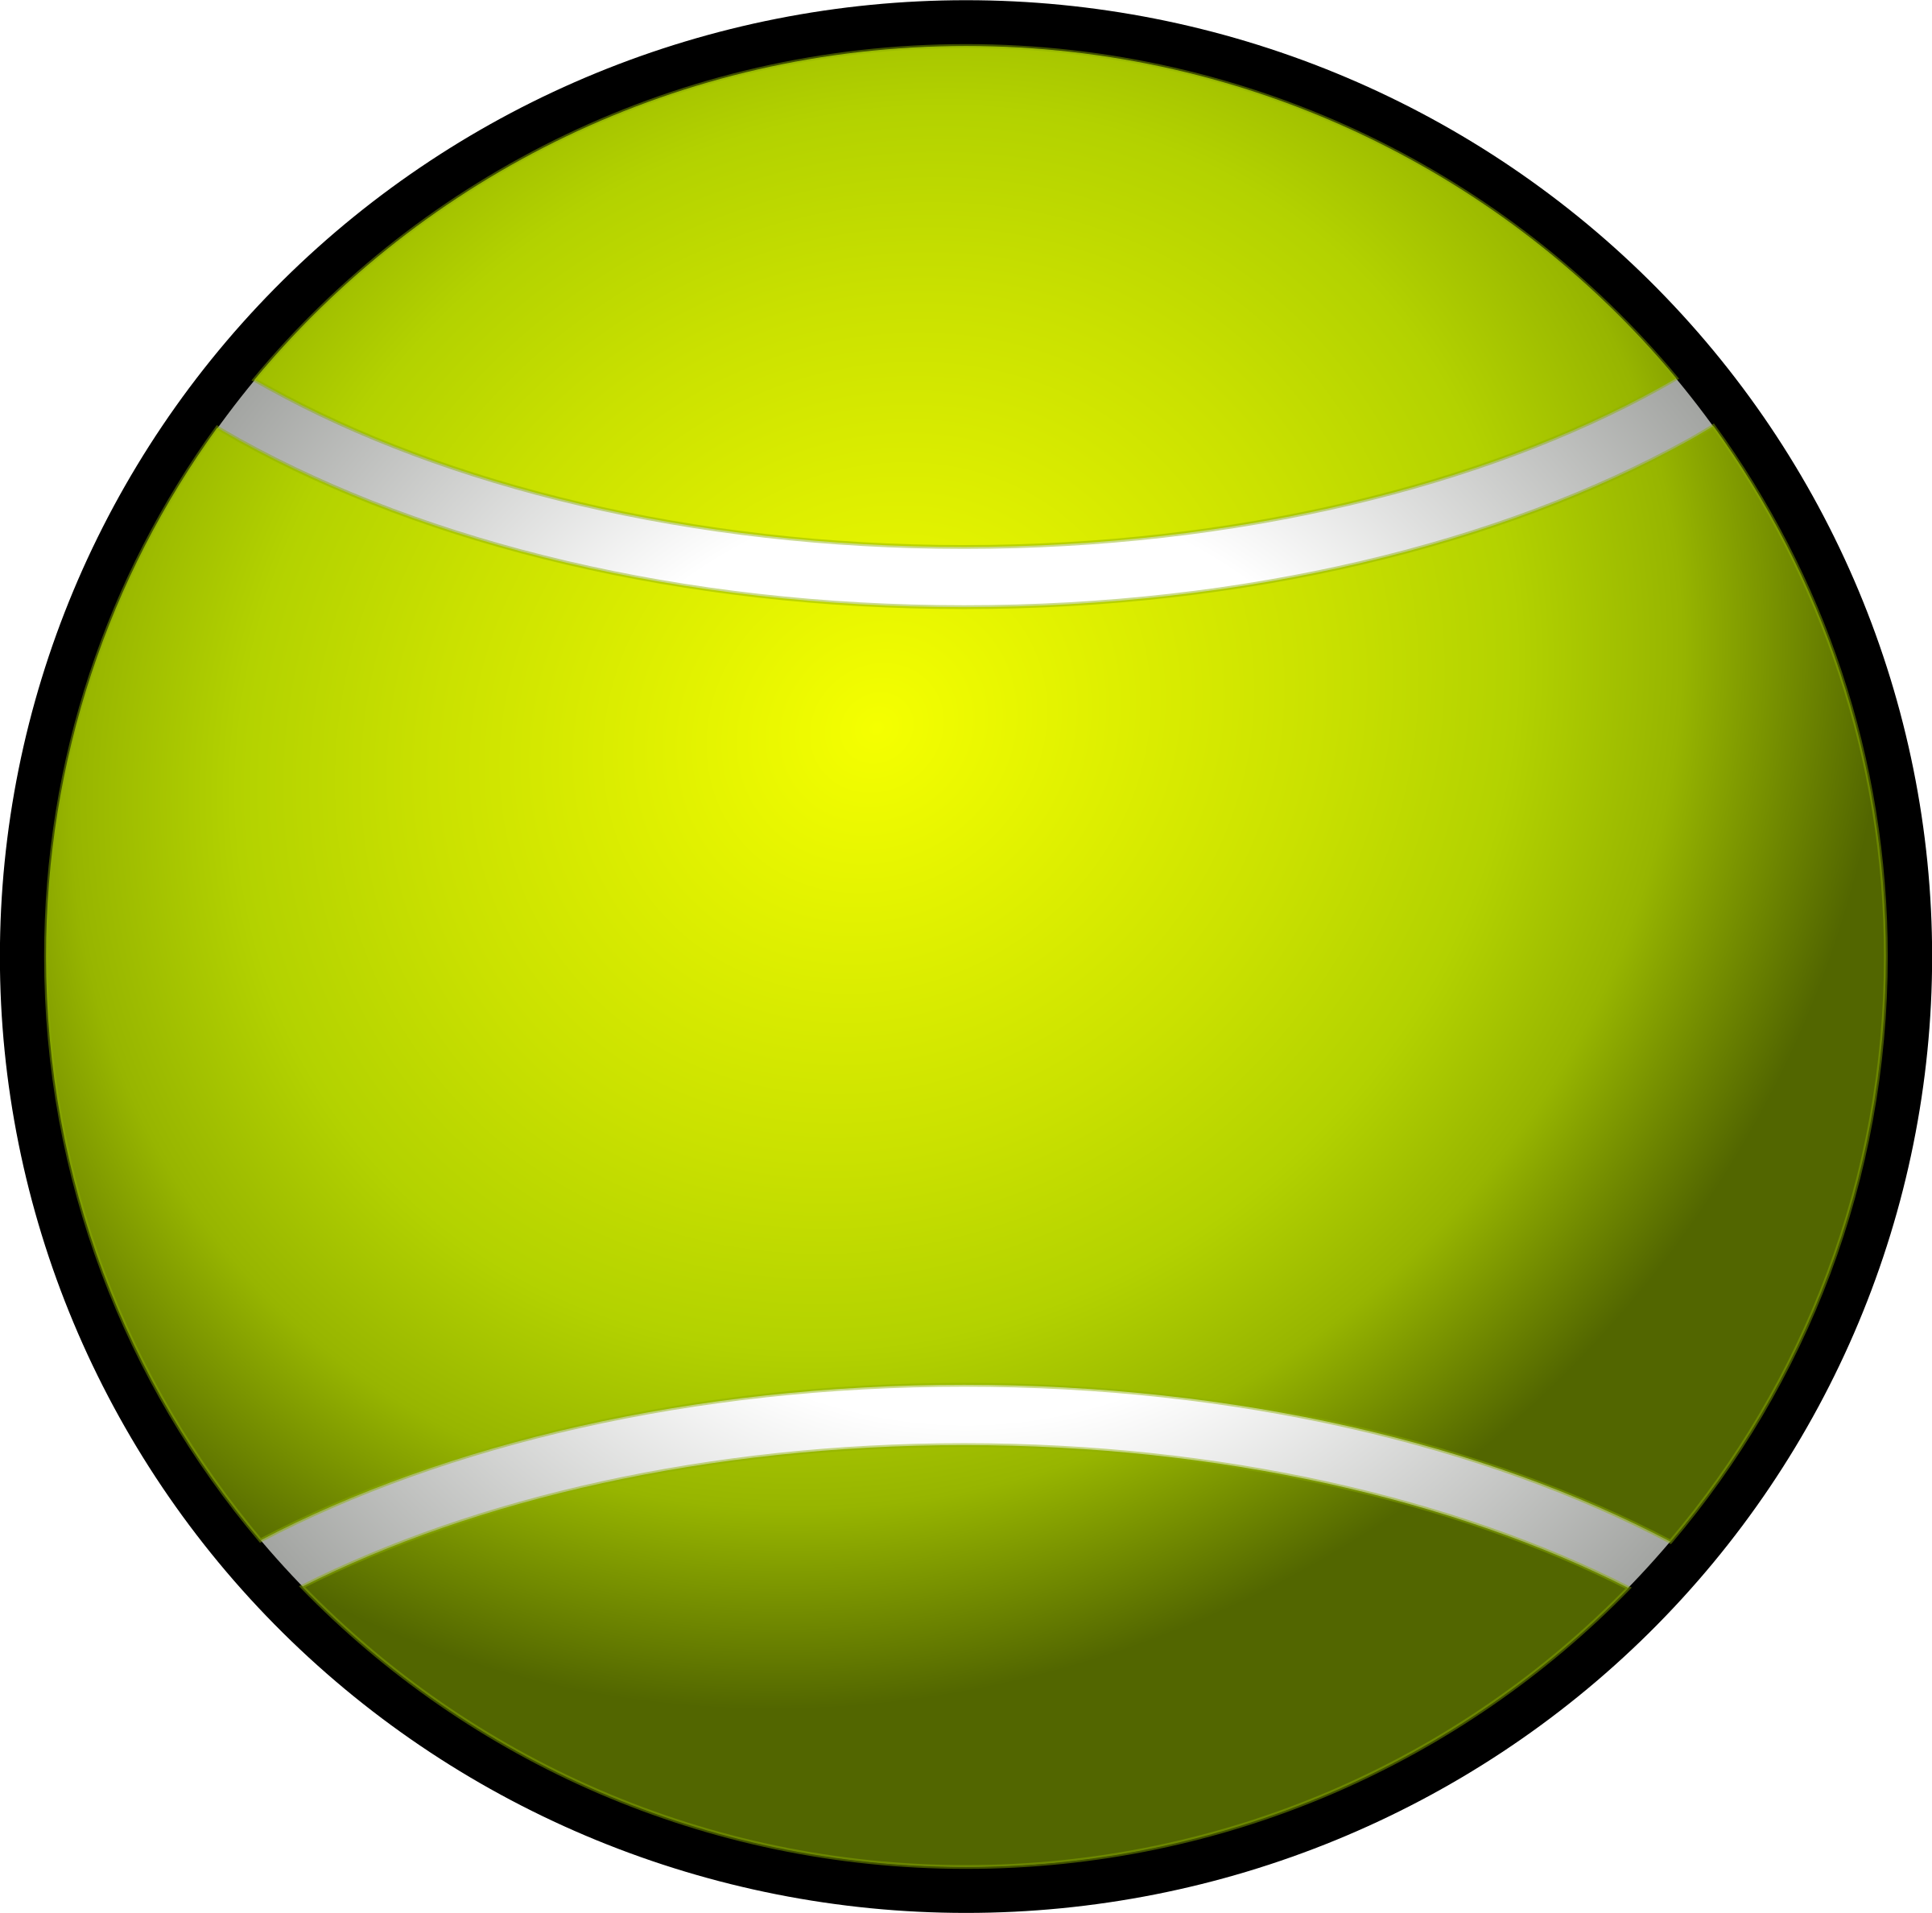 tennis ball simple by Chrisdesign